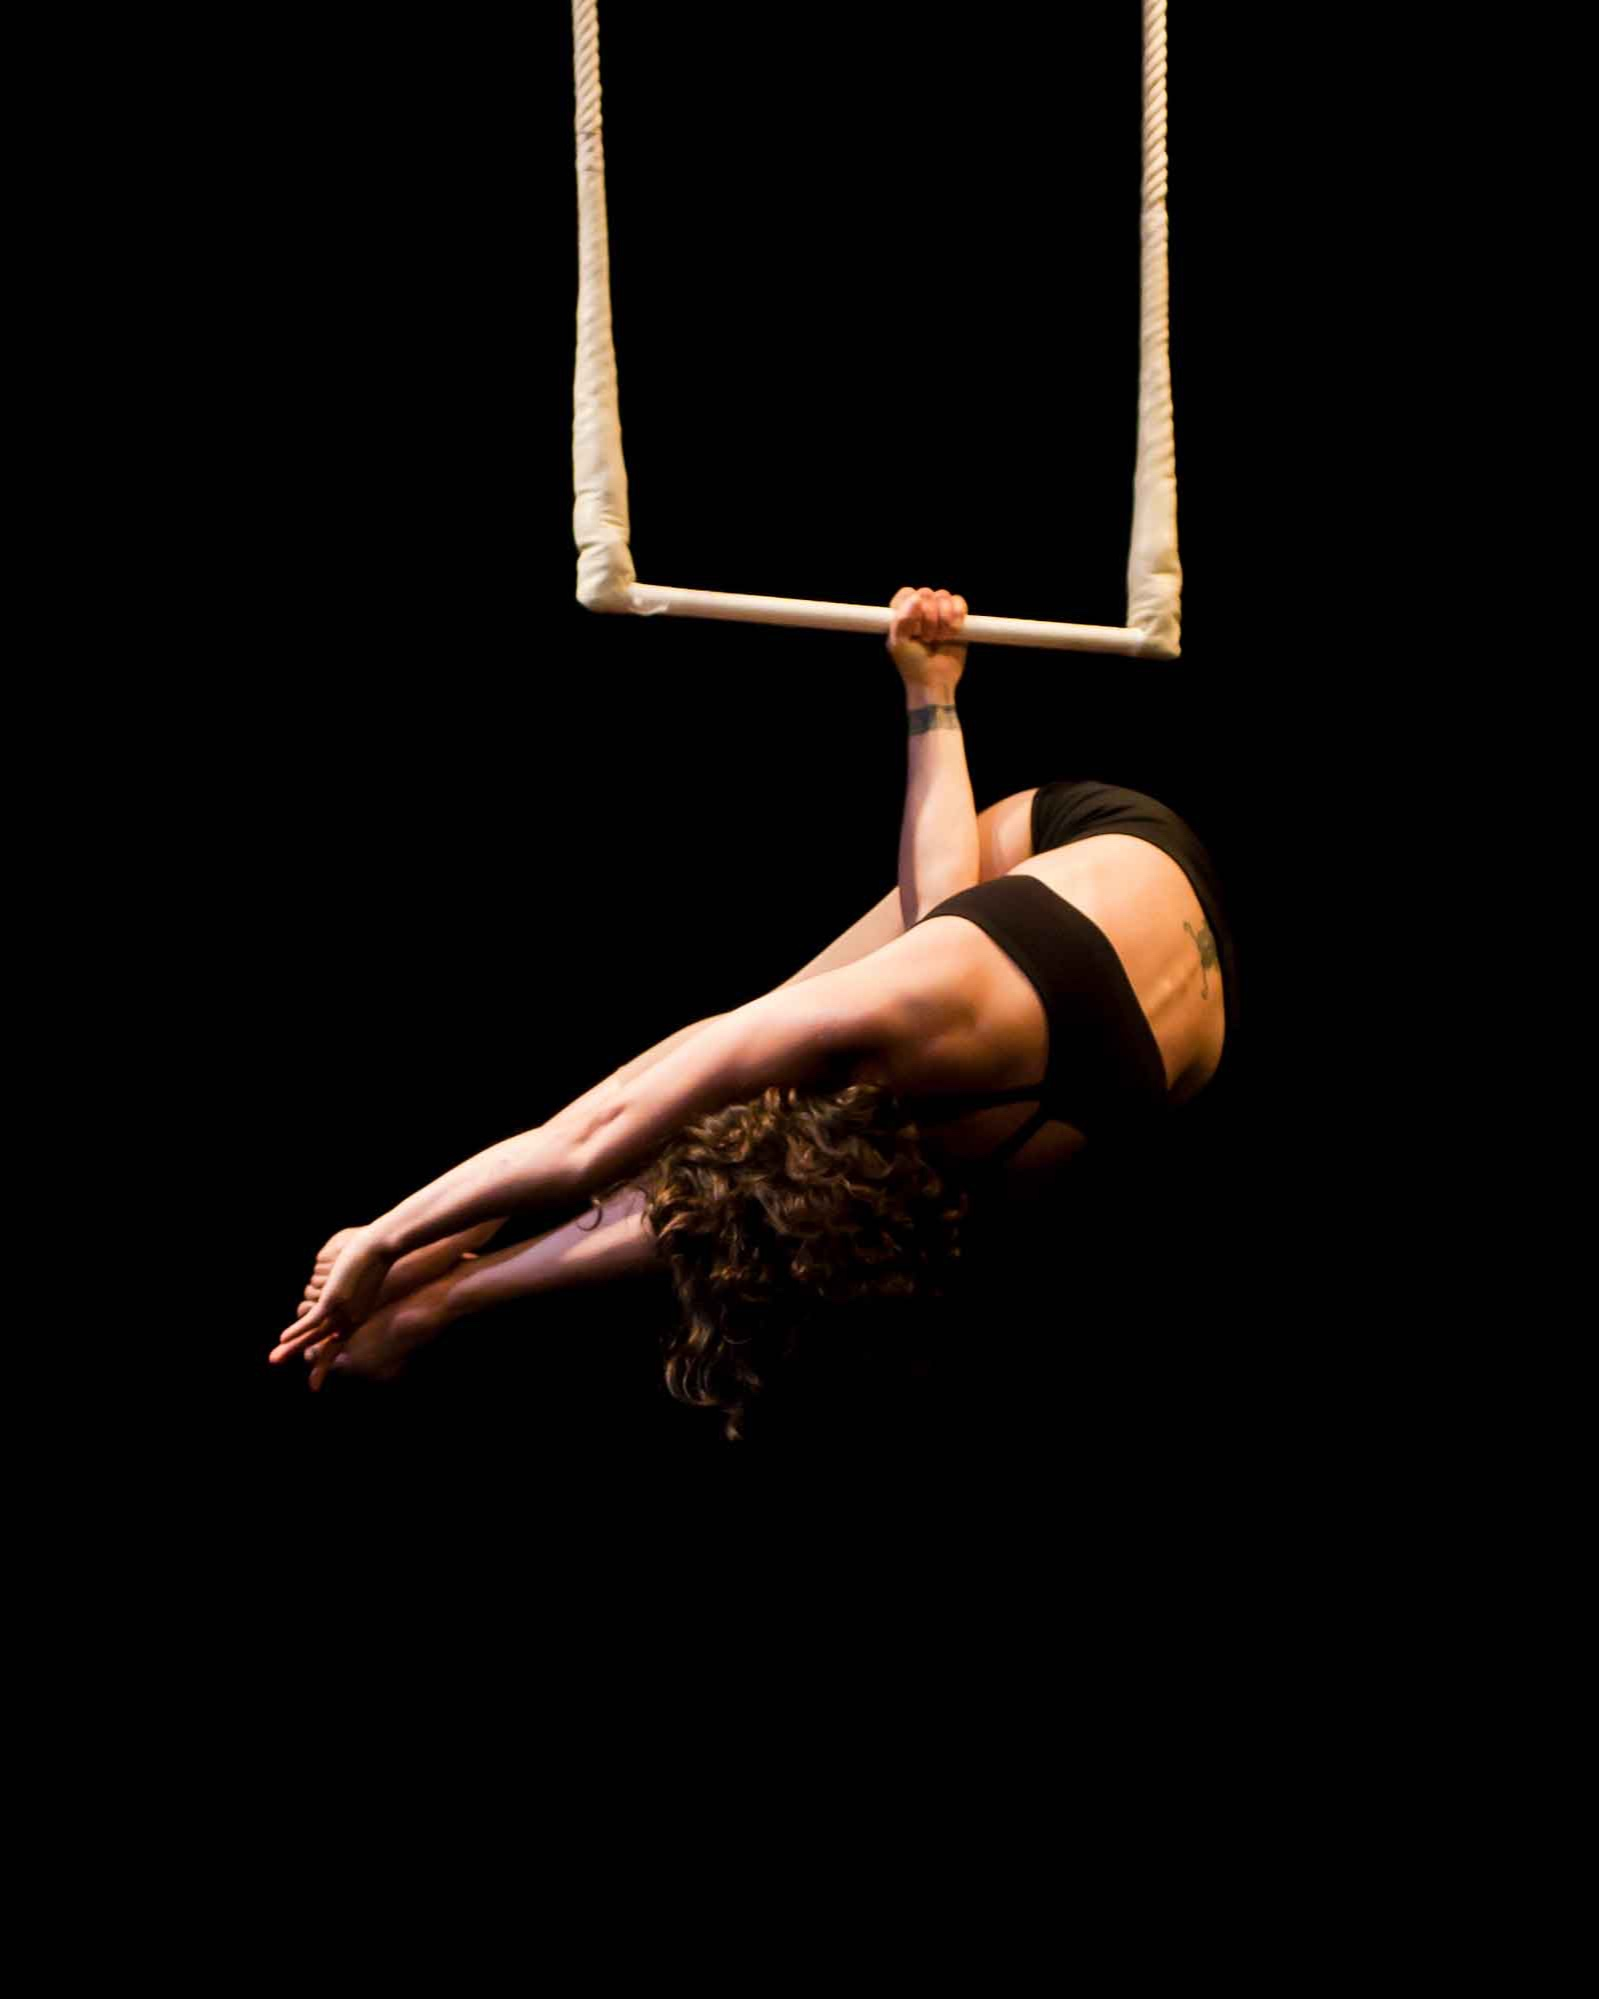 Amanda in meathook position on trapeze with dark background, and black top and shorts.